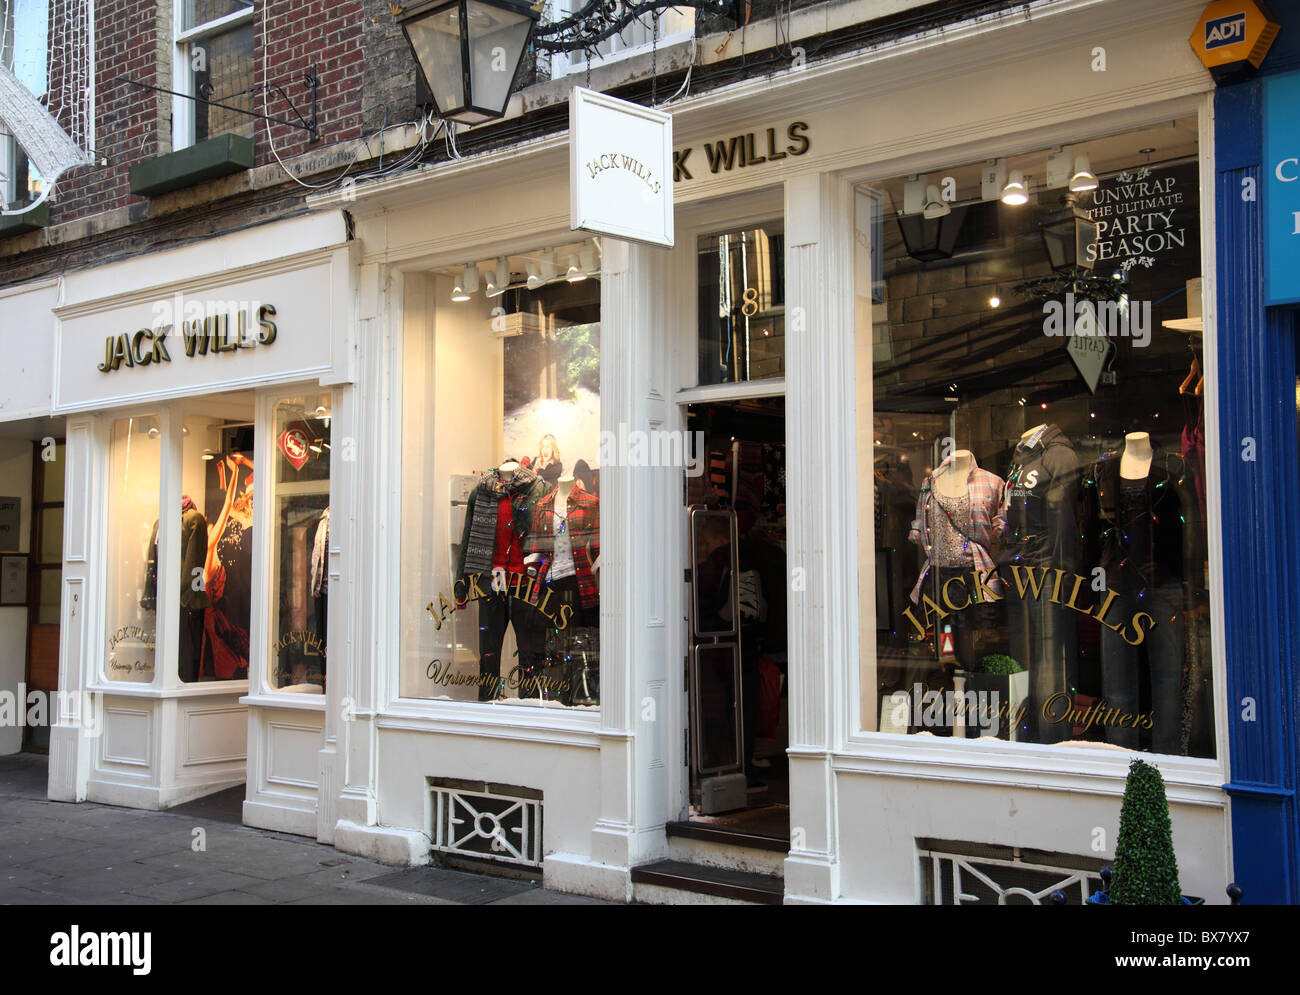 A Jack Wills store in Cambridge, England, U.K. - Stock Image